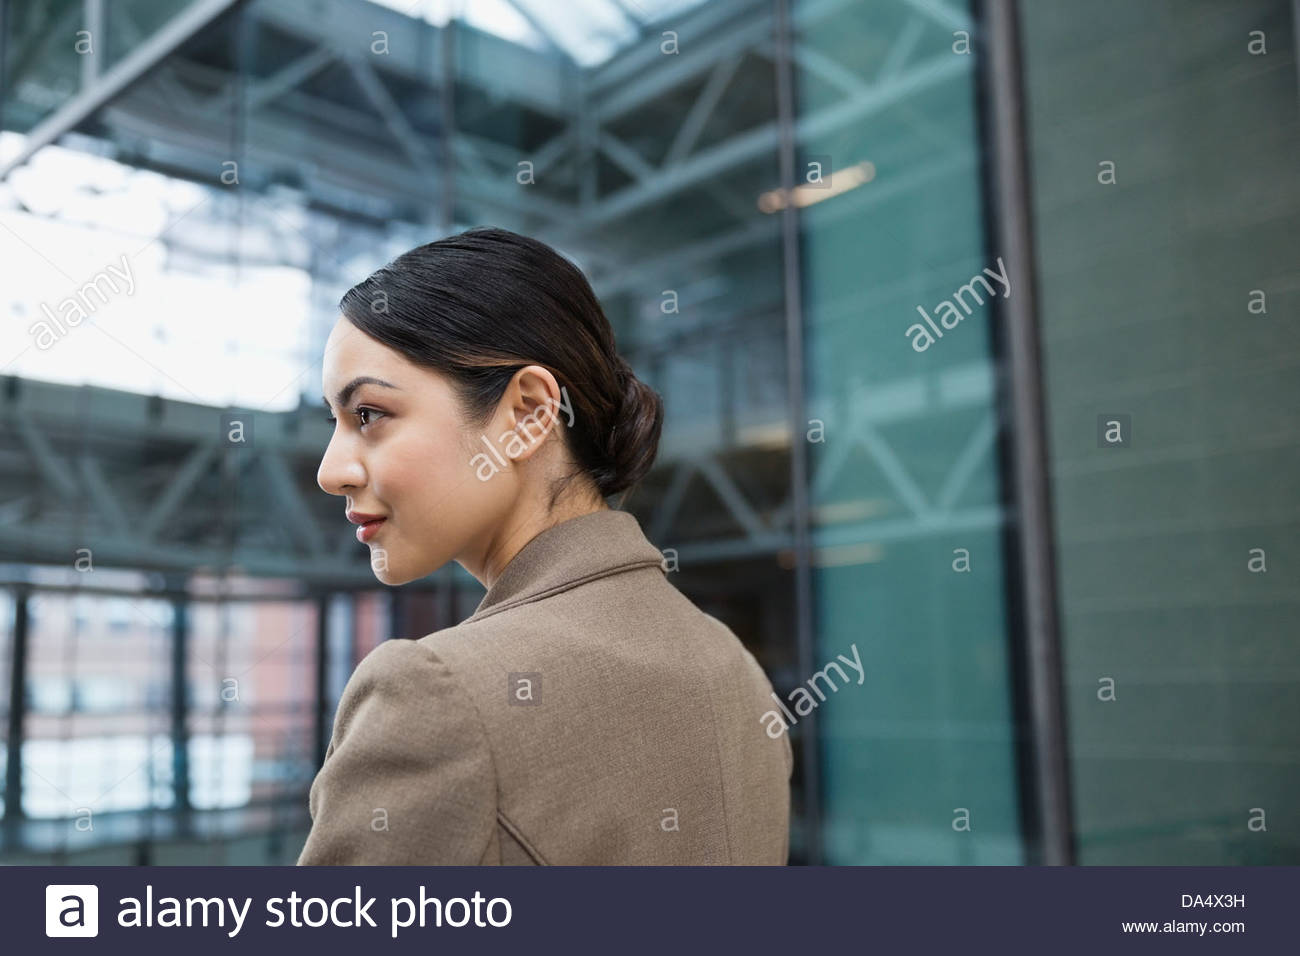 Businesswoman standing in office building - Stock Image